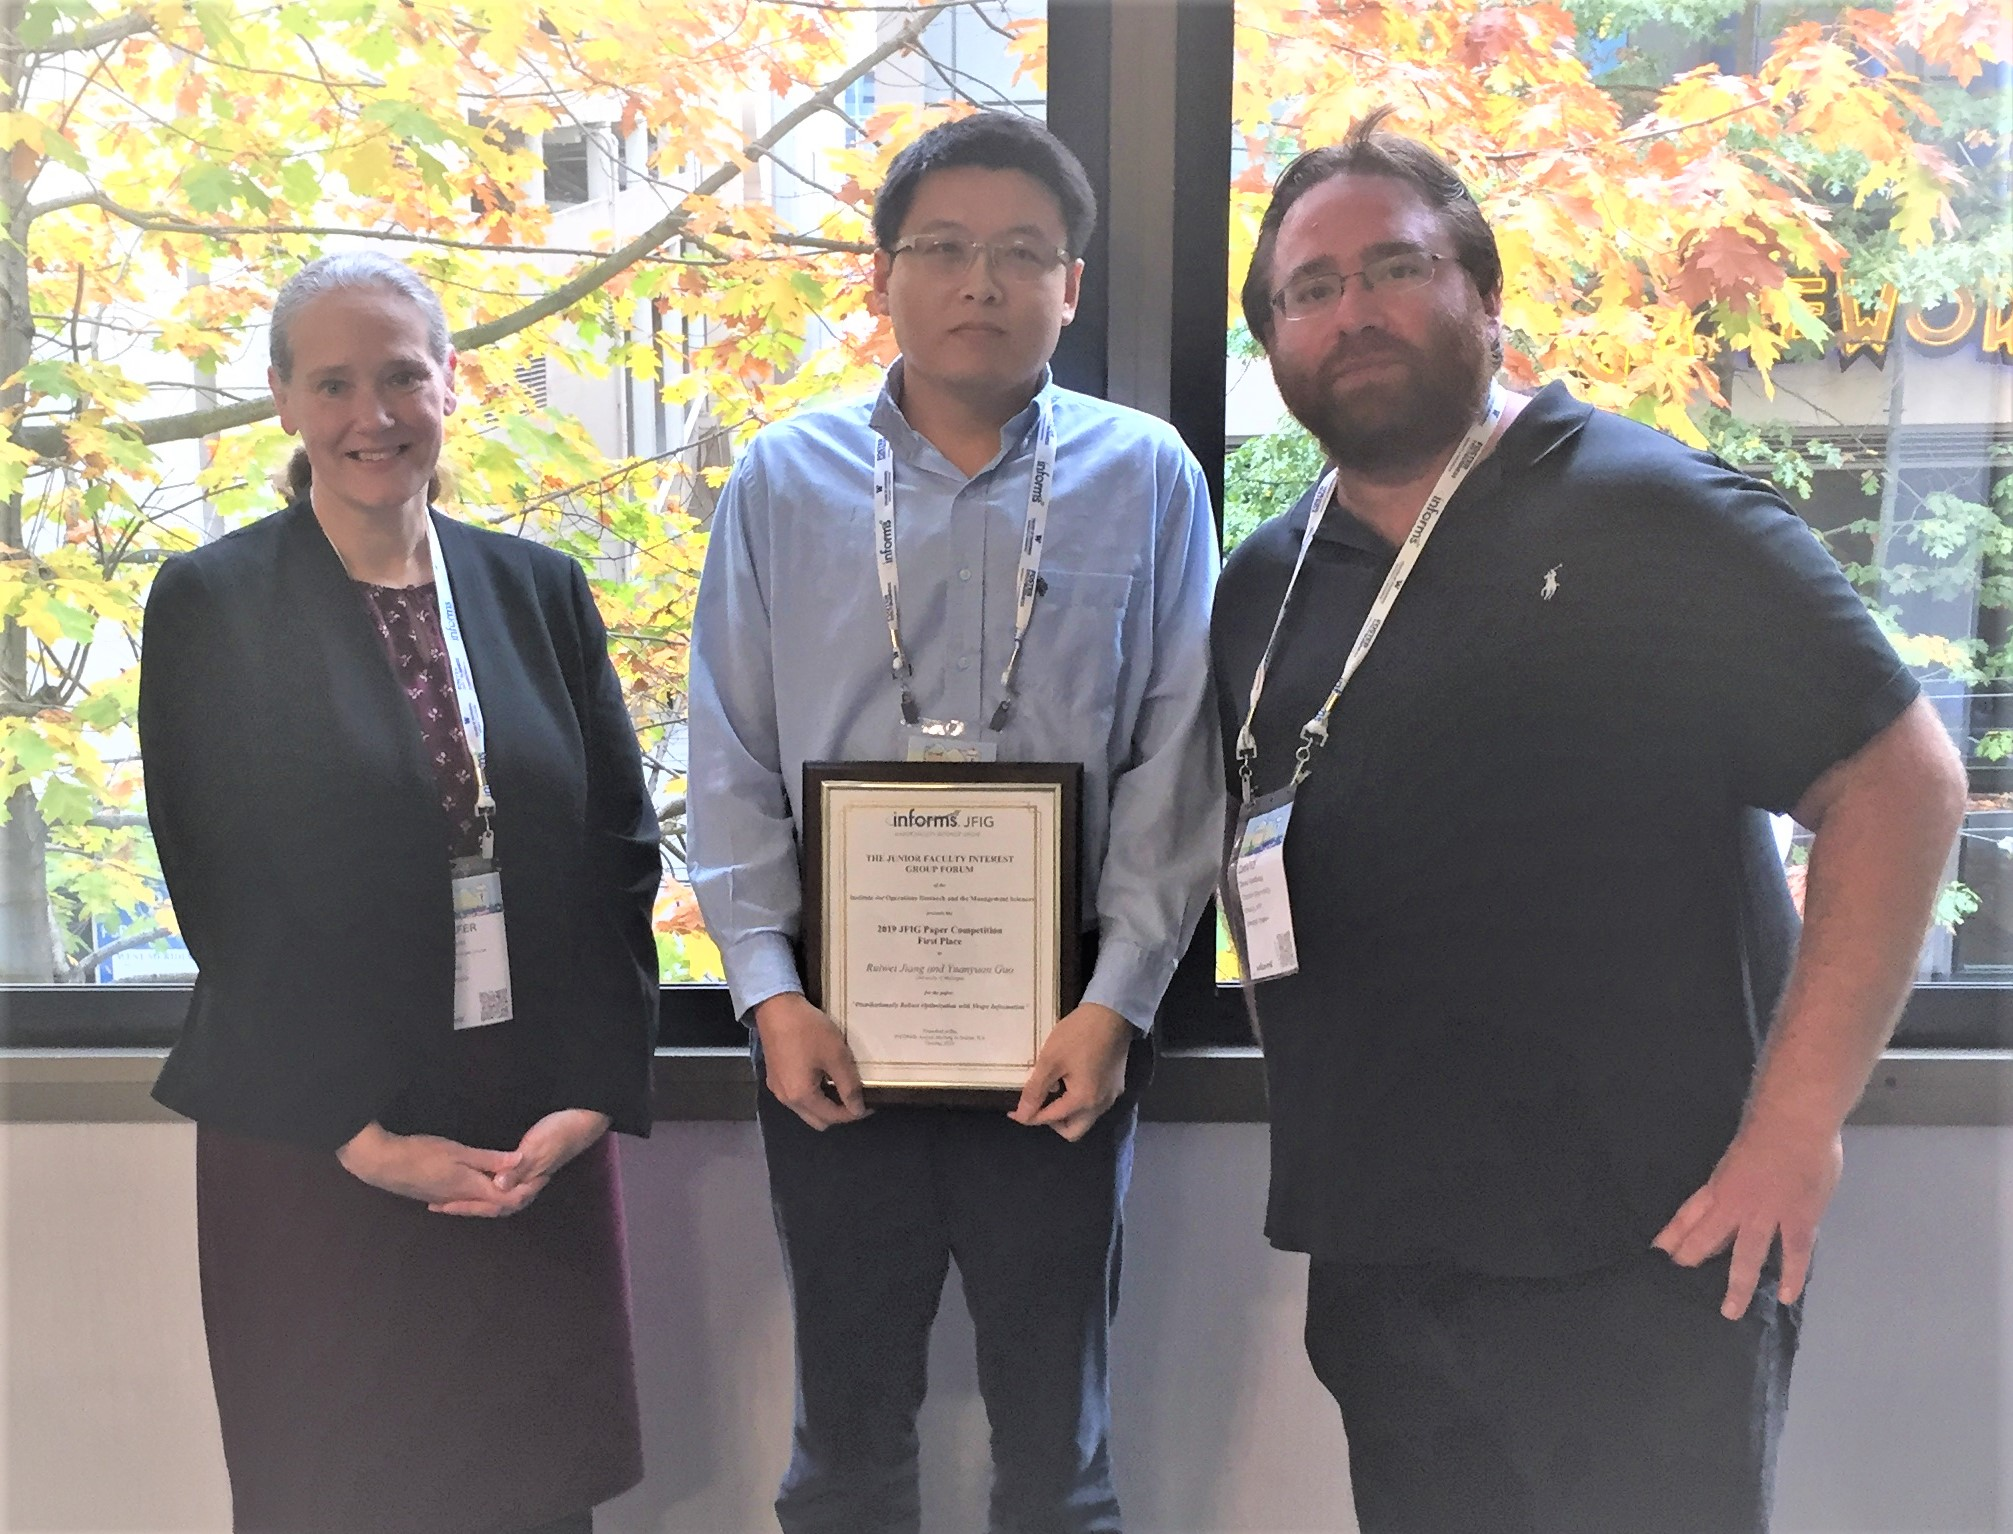 Ruiwei Jiang receives JFIG award at the INFORMS Annual Meeting in Seattle.